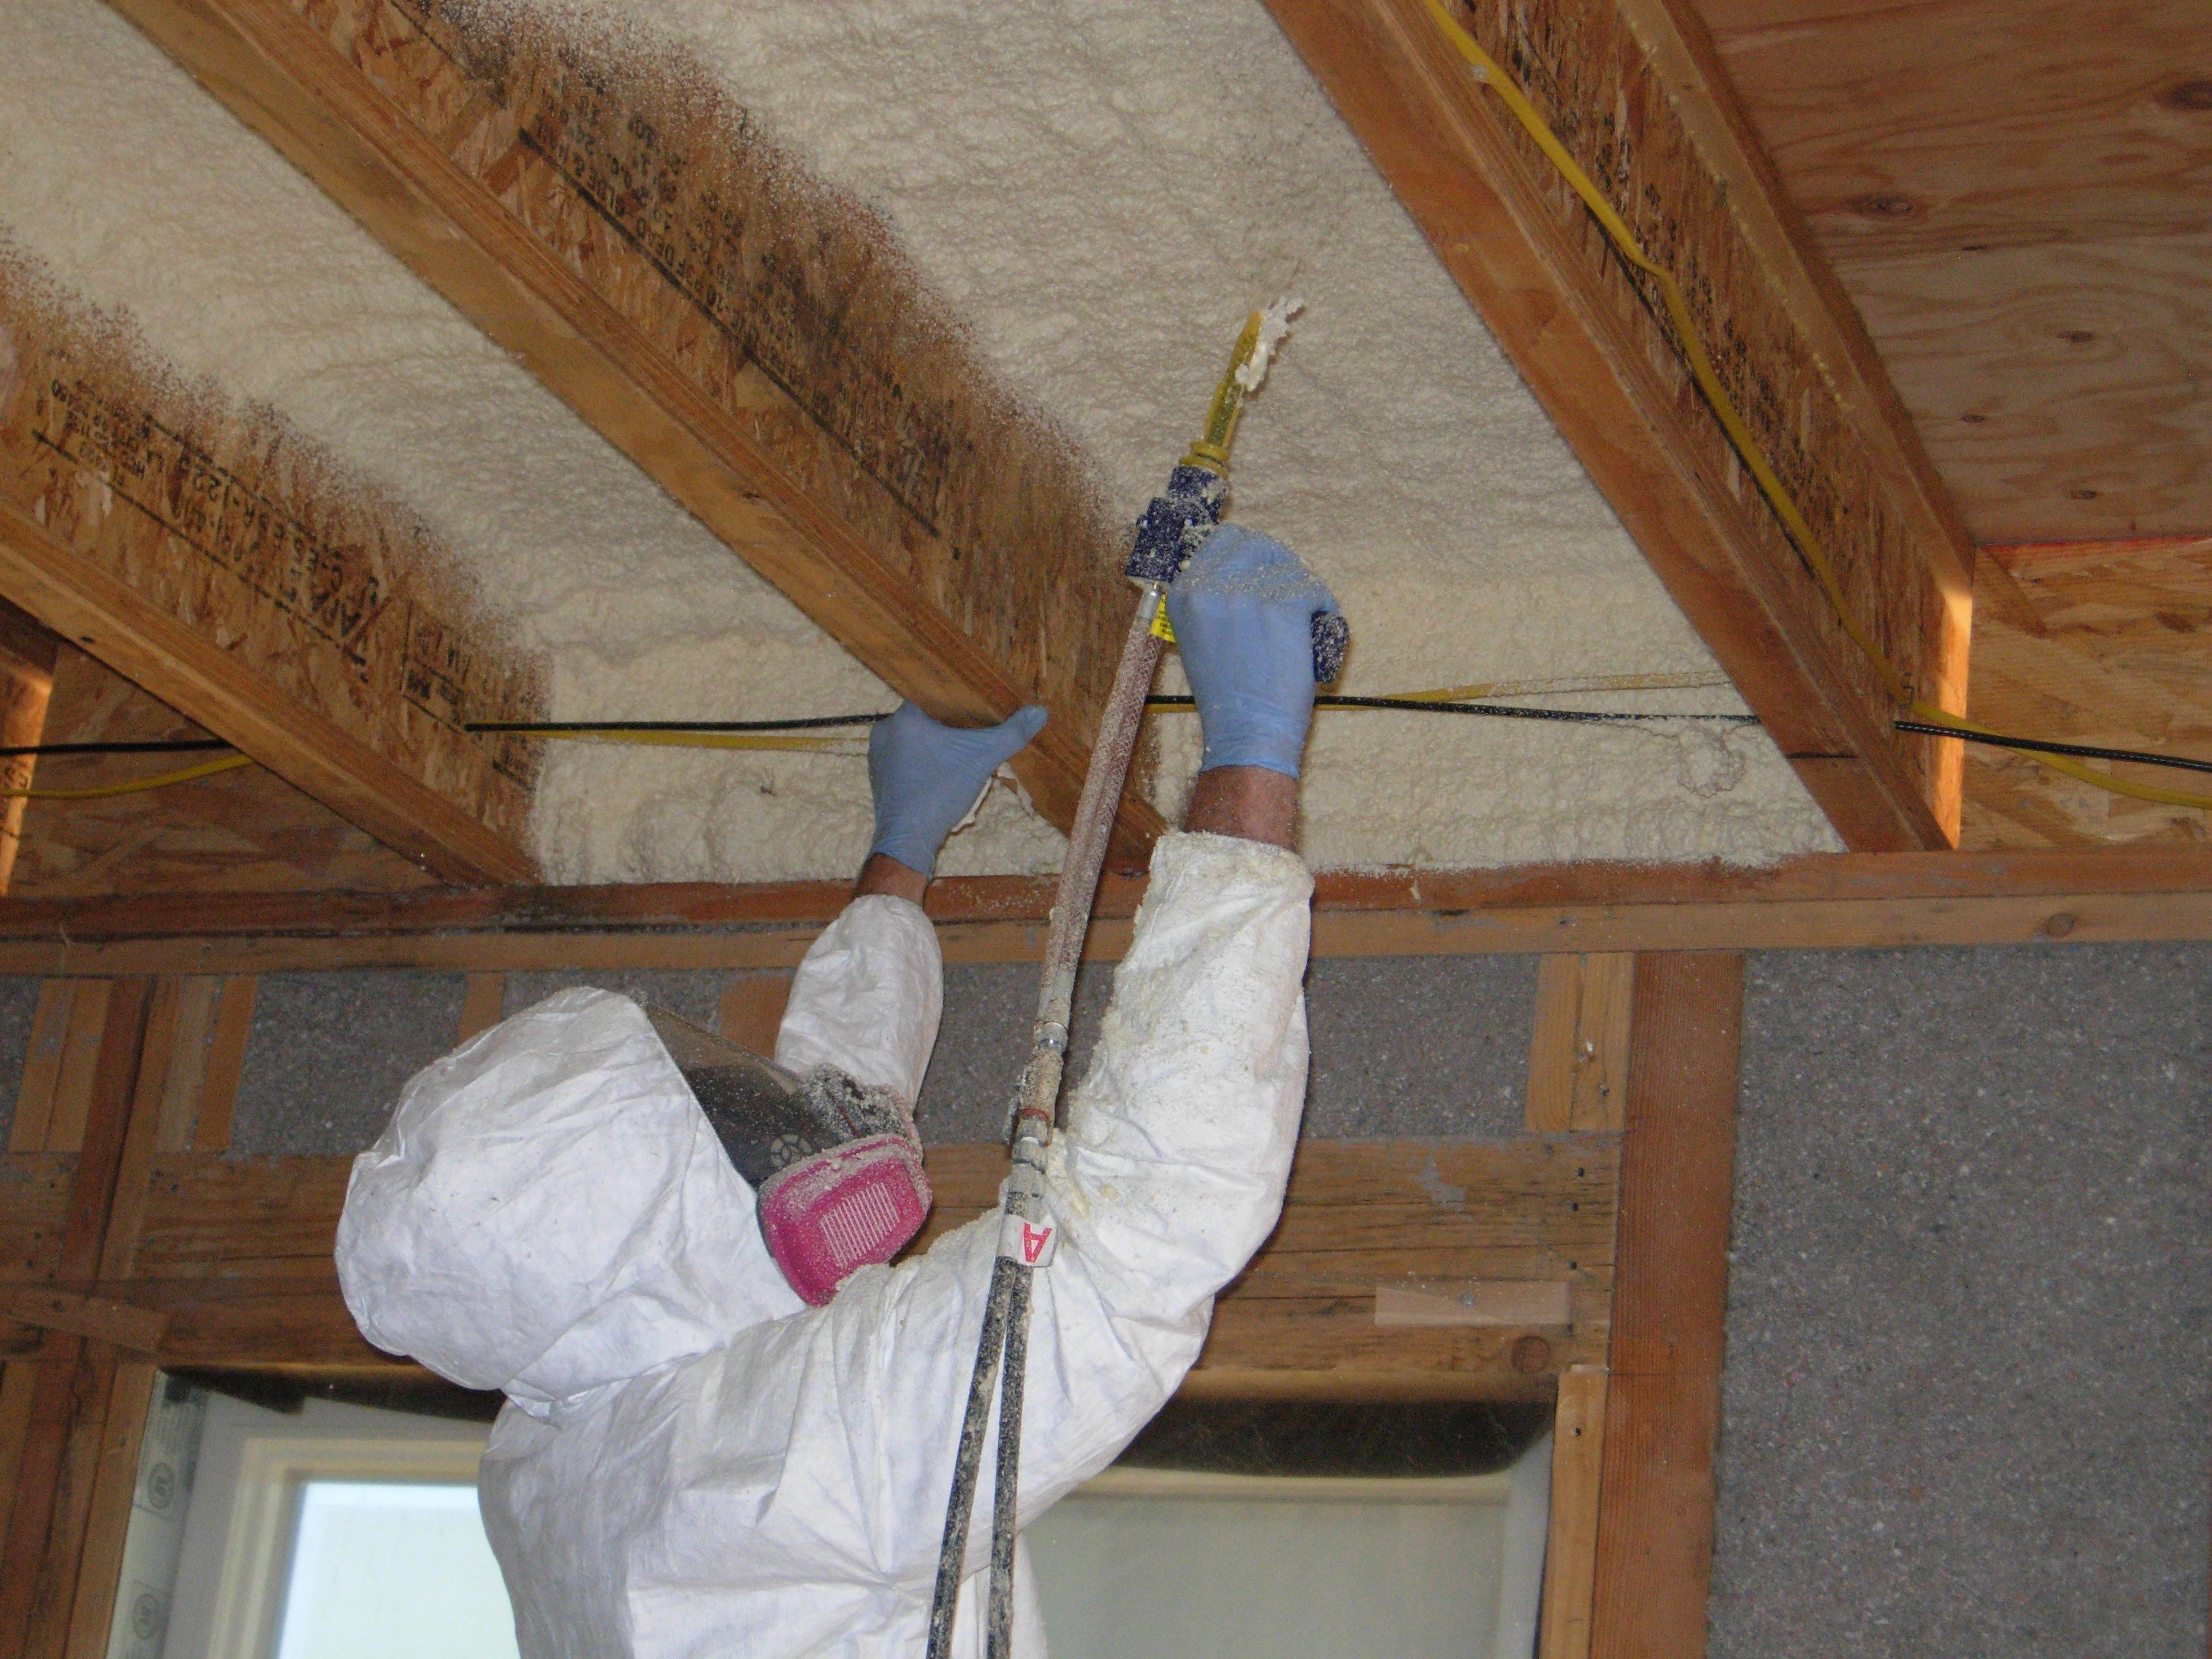 Spray Foam Insulation A Good Option For Flat Roofs And Vaulted Ceilings With No Att Garage Ceiling Insulation Basement Insulation Basement Ceiling Insulation